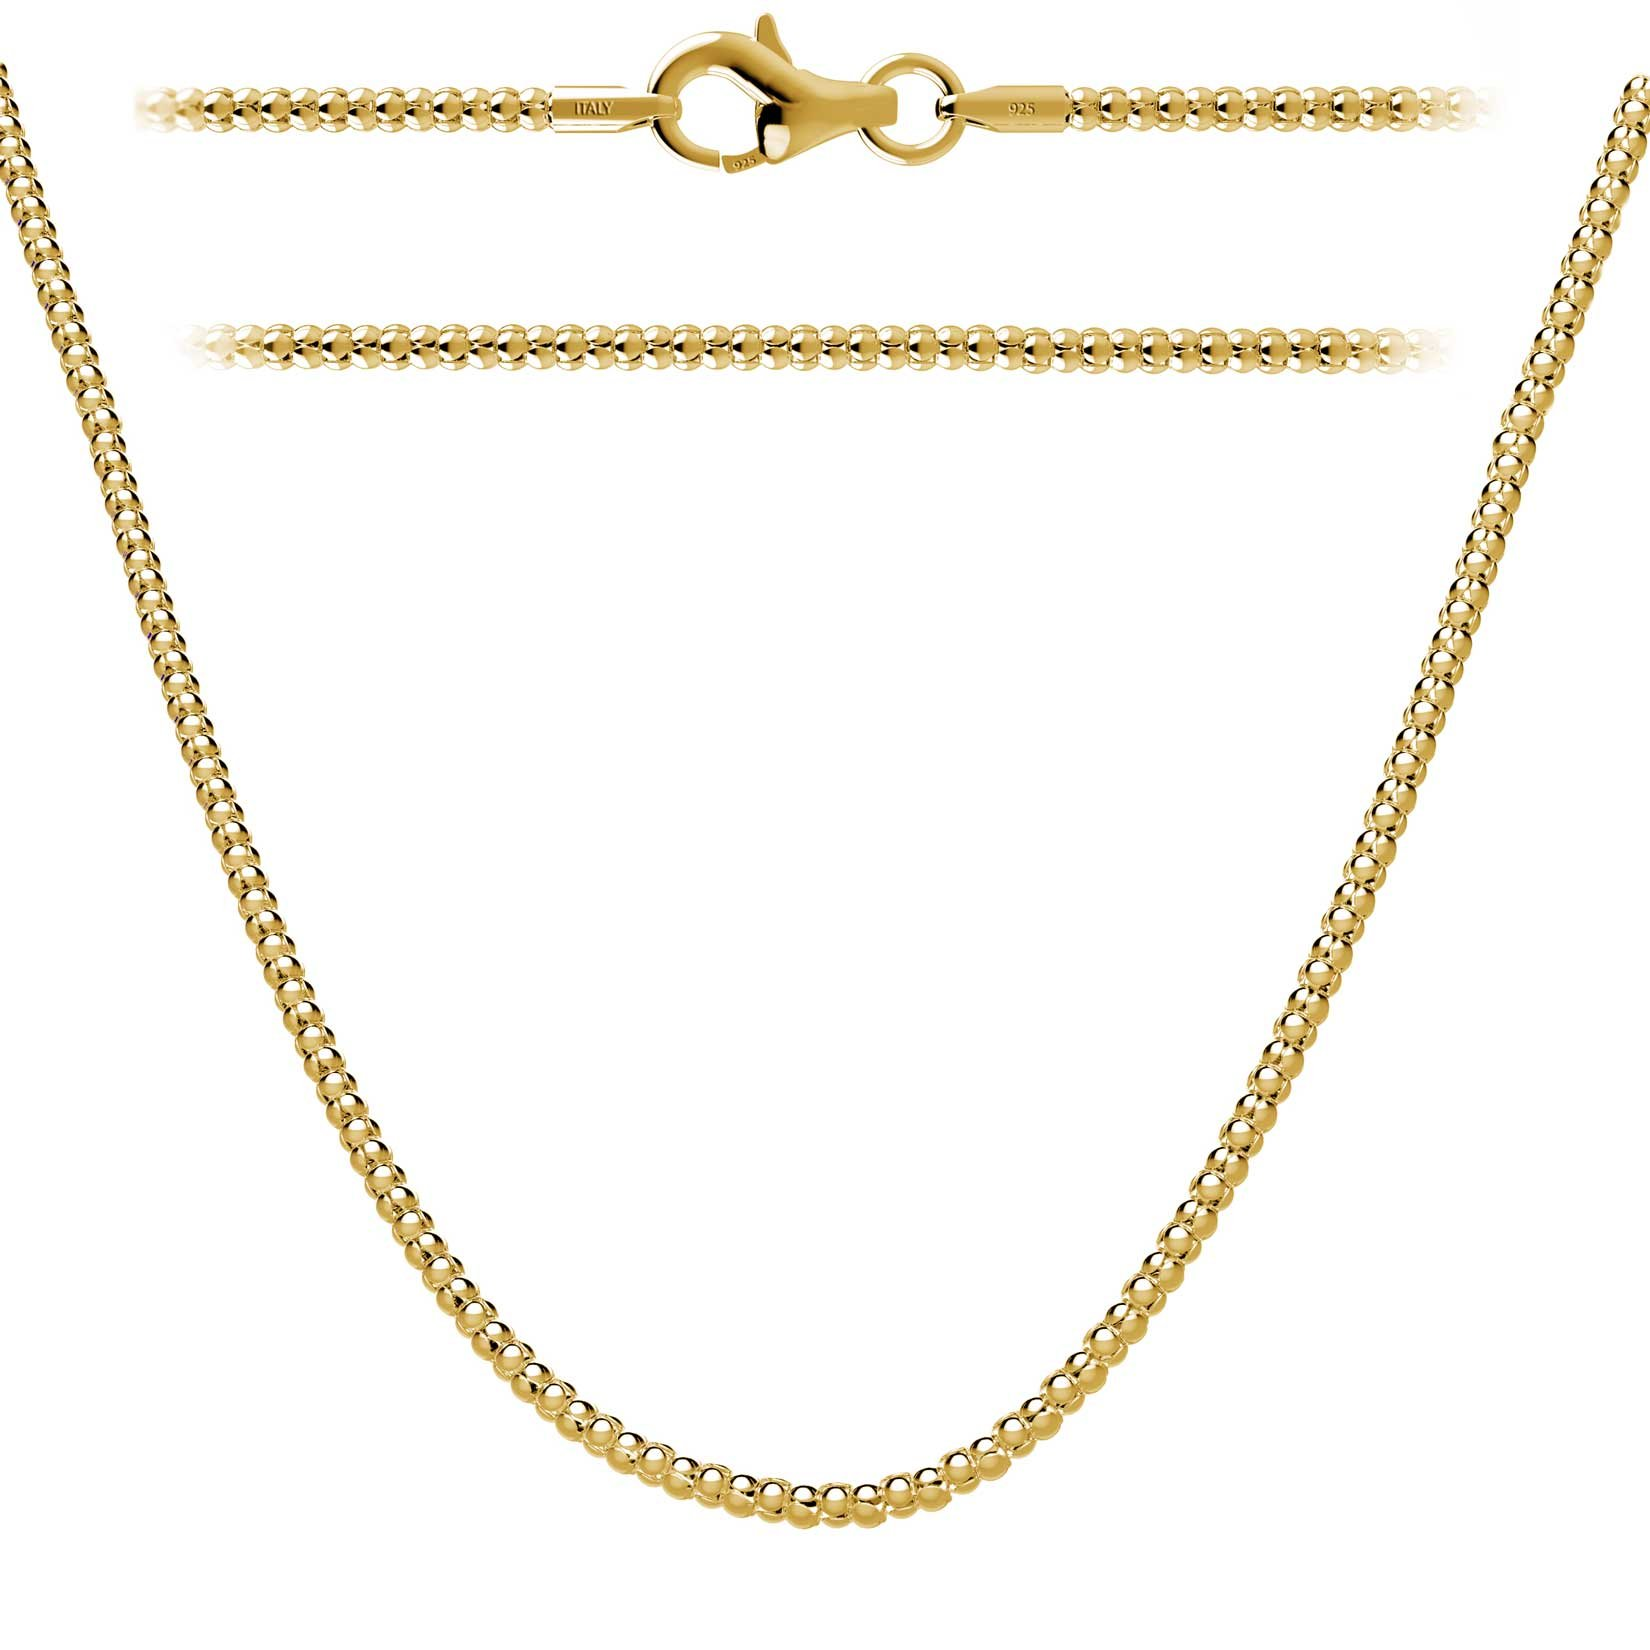 Kezef 18K Gold Plated 1.6mm Italian Sterling Silver Popcorn Chain Necklace 18'' in with Lobster Clasp